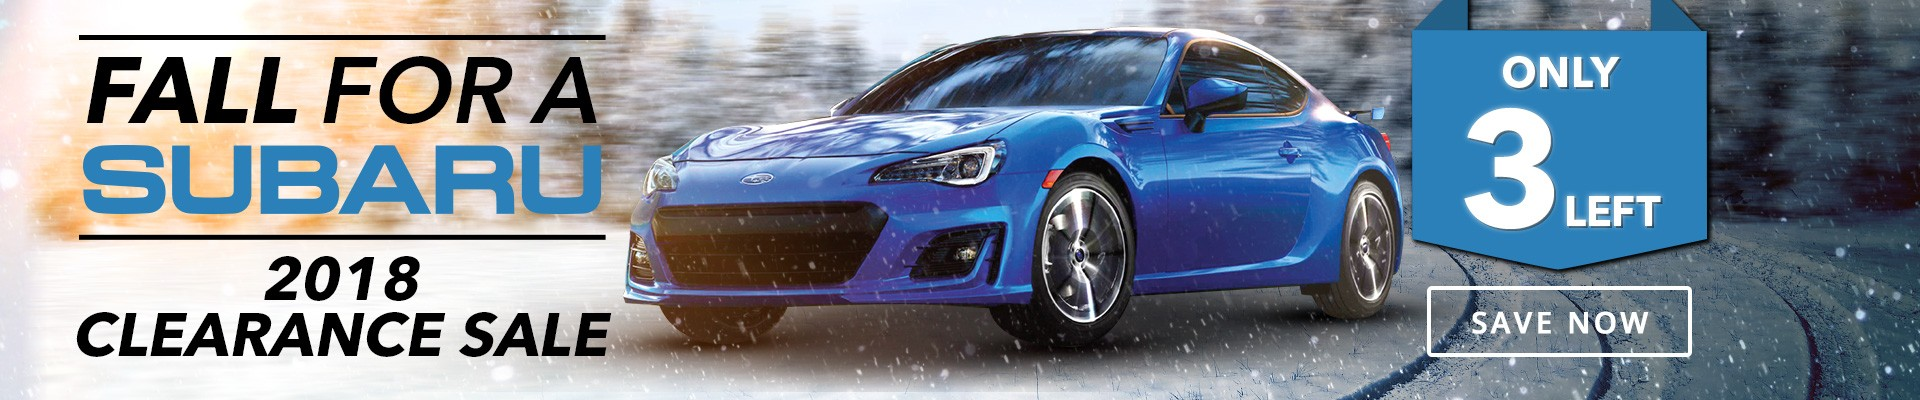 Willowdale Subaru BRZ Clearance - Only 3 Left in Stock!